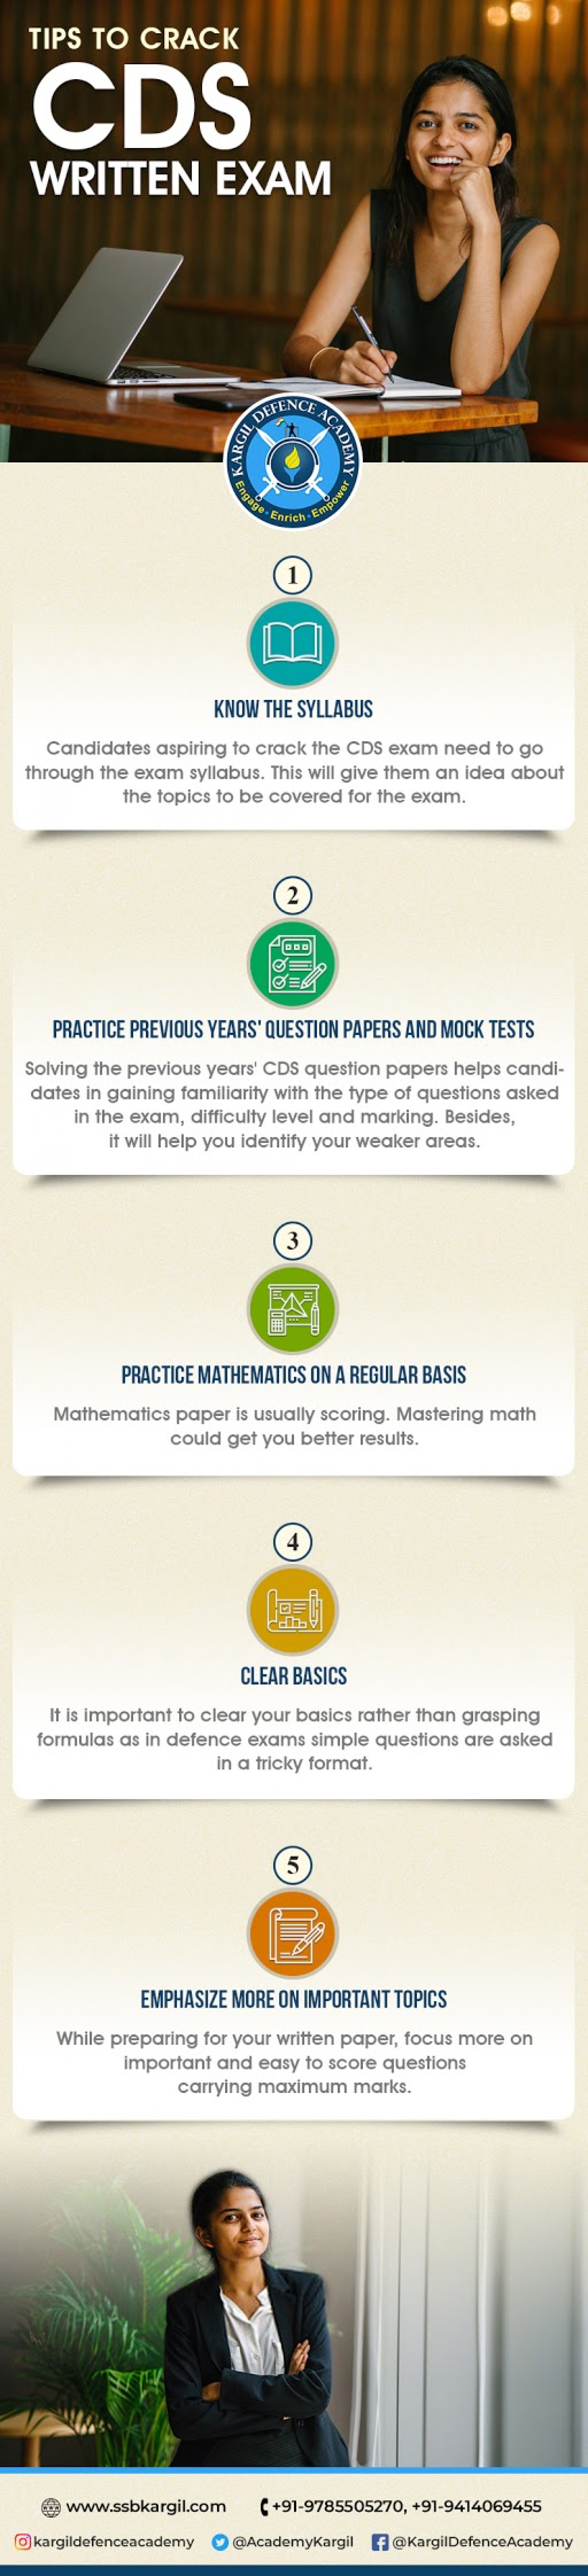 Tips to crack CDS written exam Infographic